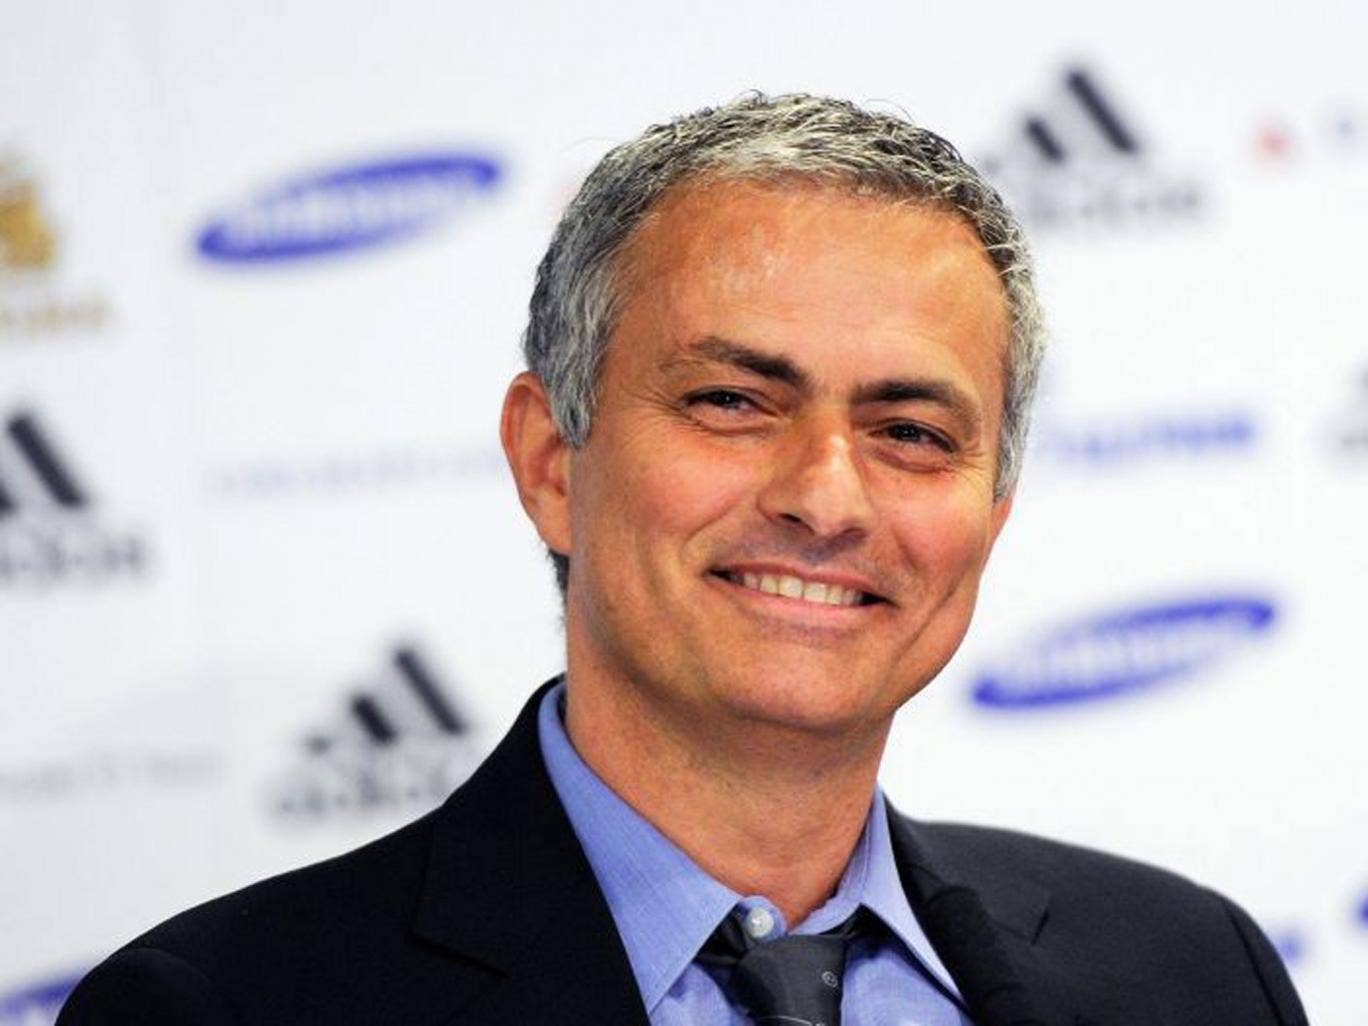 Jose Mourinho reacts with a smile during his first press conference as the new Chelsea manager at Stamford Bridge in London (EPA)